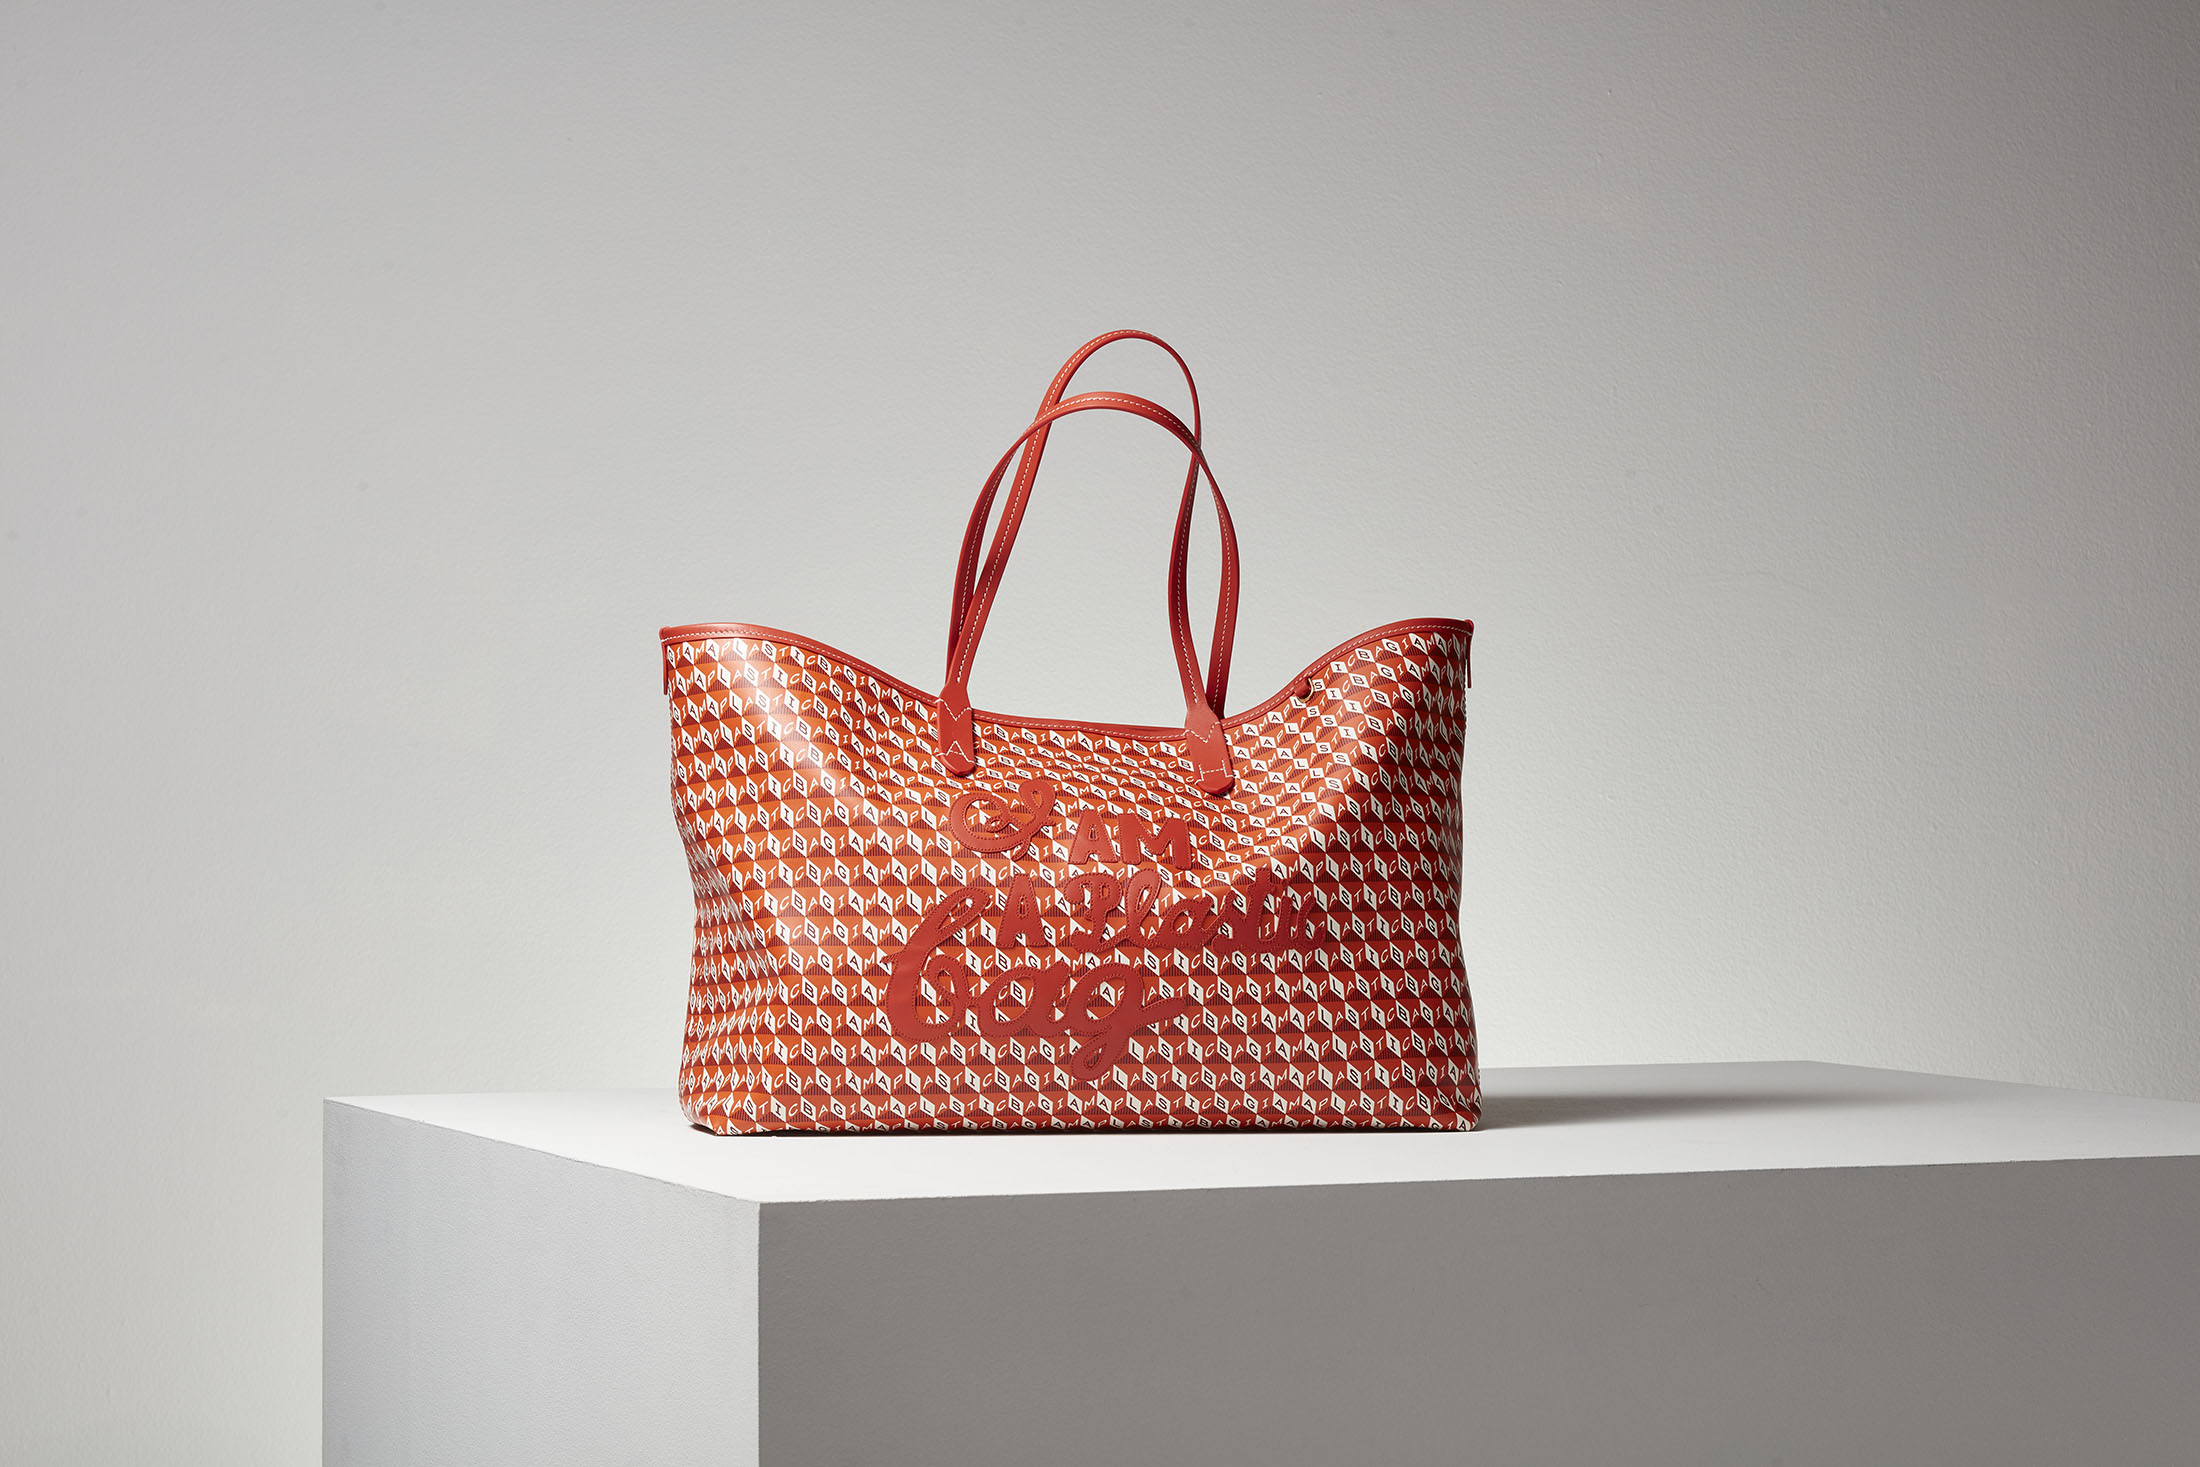 Anya Hindmarch I Am A Plastic Bag Collection